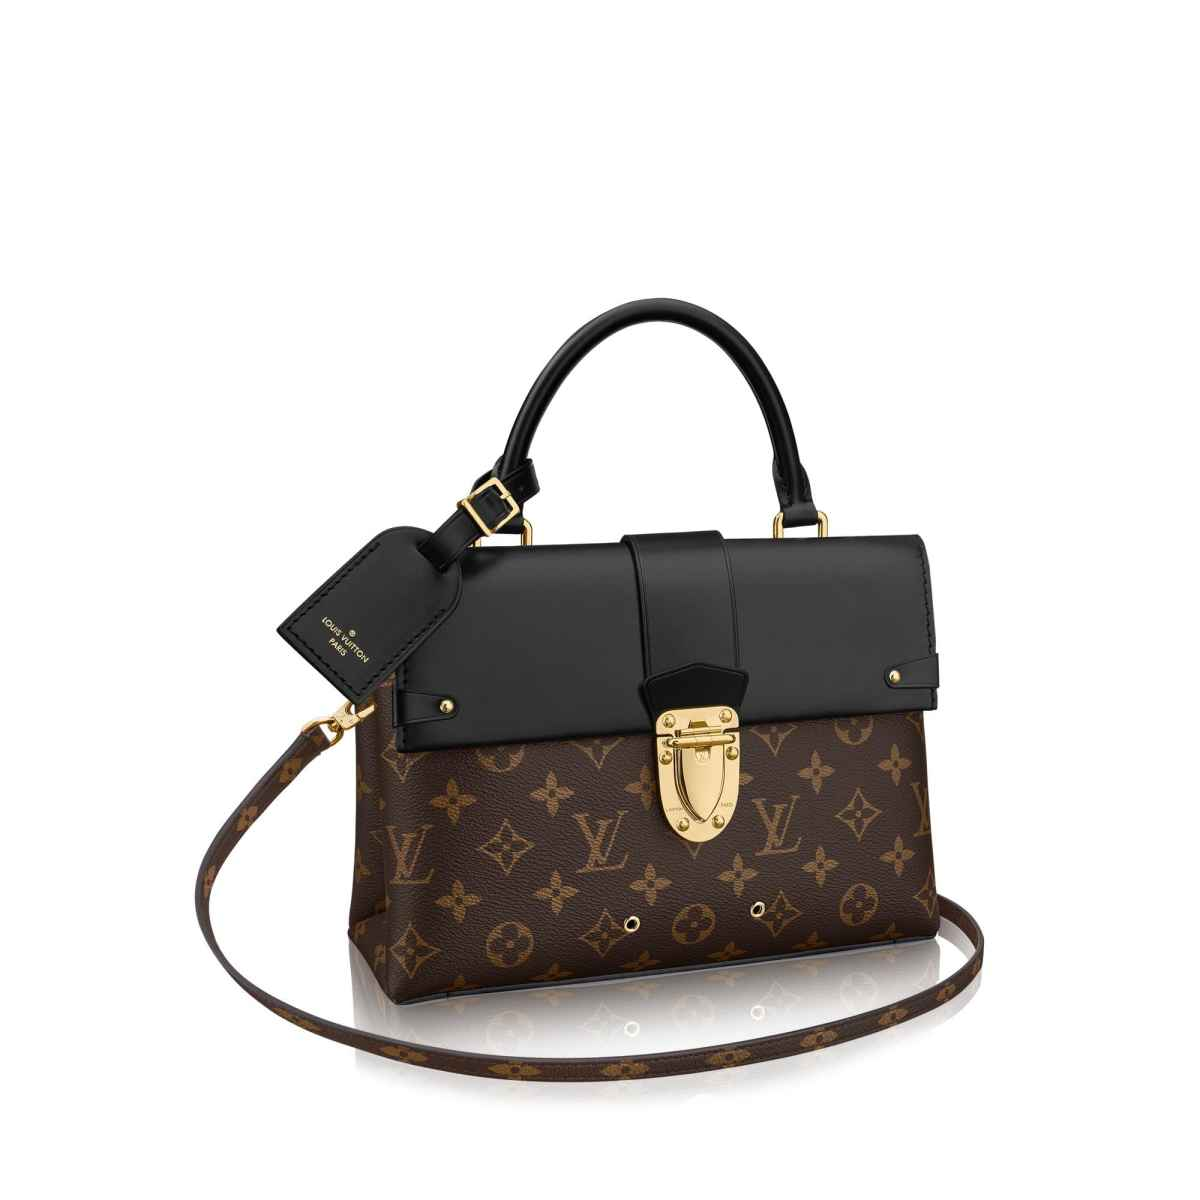 07cf434ce9ee M43125 Louis Vuitton 2018 Premium One Handle Flap Bag MM – eLuxury